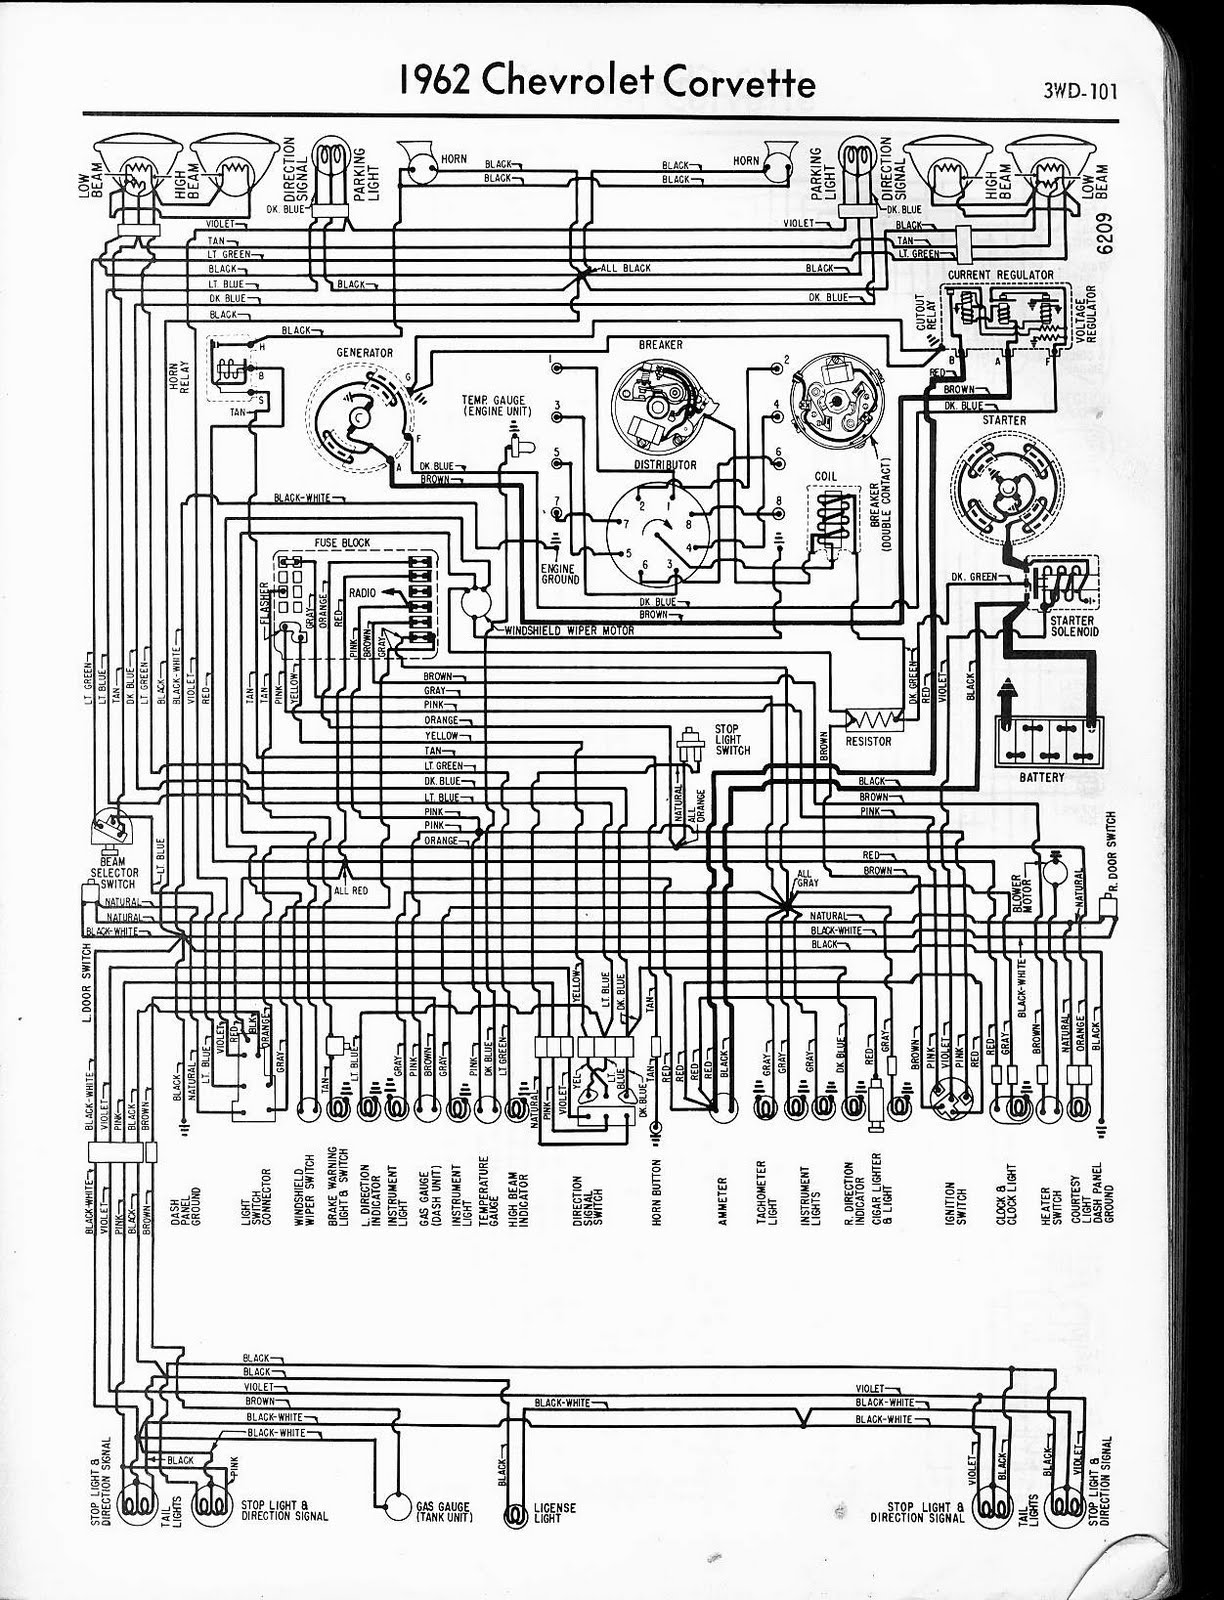 1962 Chevy L6 Ignition Coil Wiring Diagram Car Blaster Auto Electrical Rh Obsmail Obstechnologies Com 350 Gm Switch